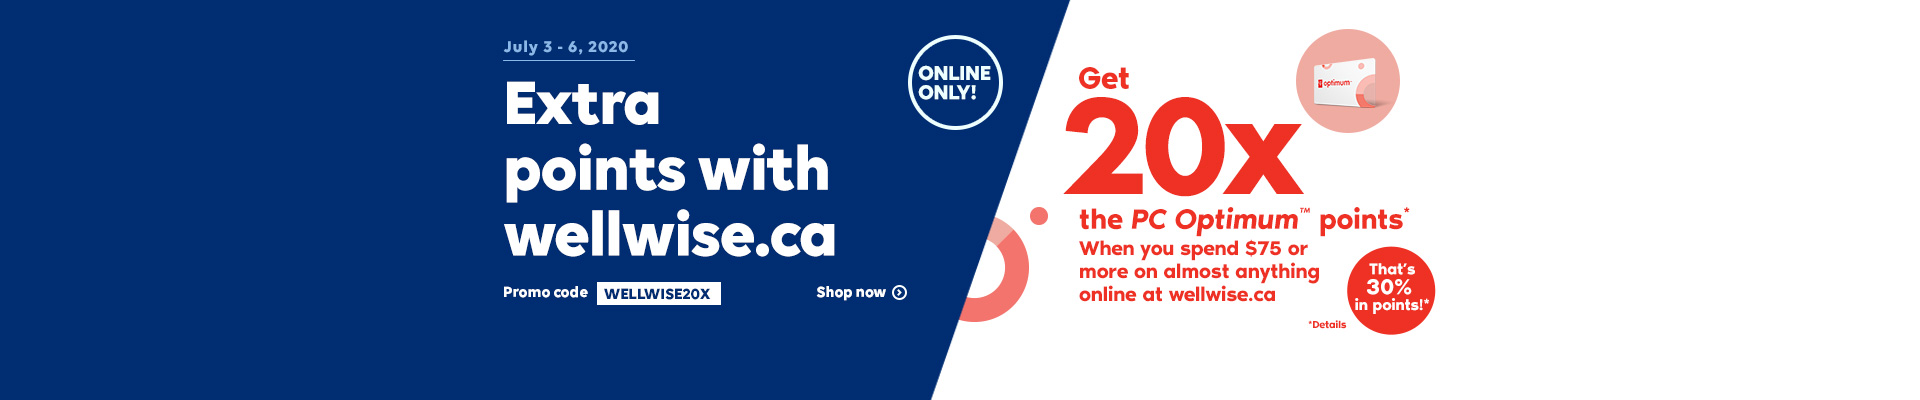 July 3 - 6, 2020. Online Only! Earn more points online! Promo code WELLWISE20X. Shop now. Get 20x the PC OptimumTM points* when you spend $75 or more on almost anything online at wellwise.ca. That's 30% in points!*